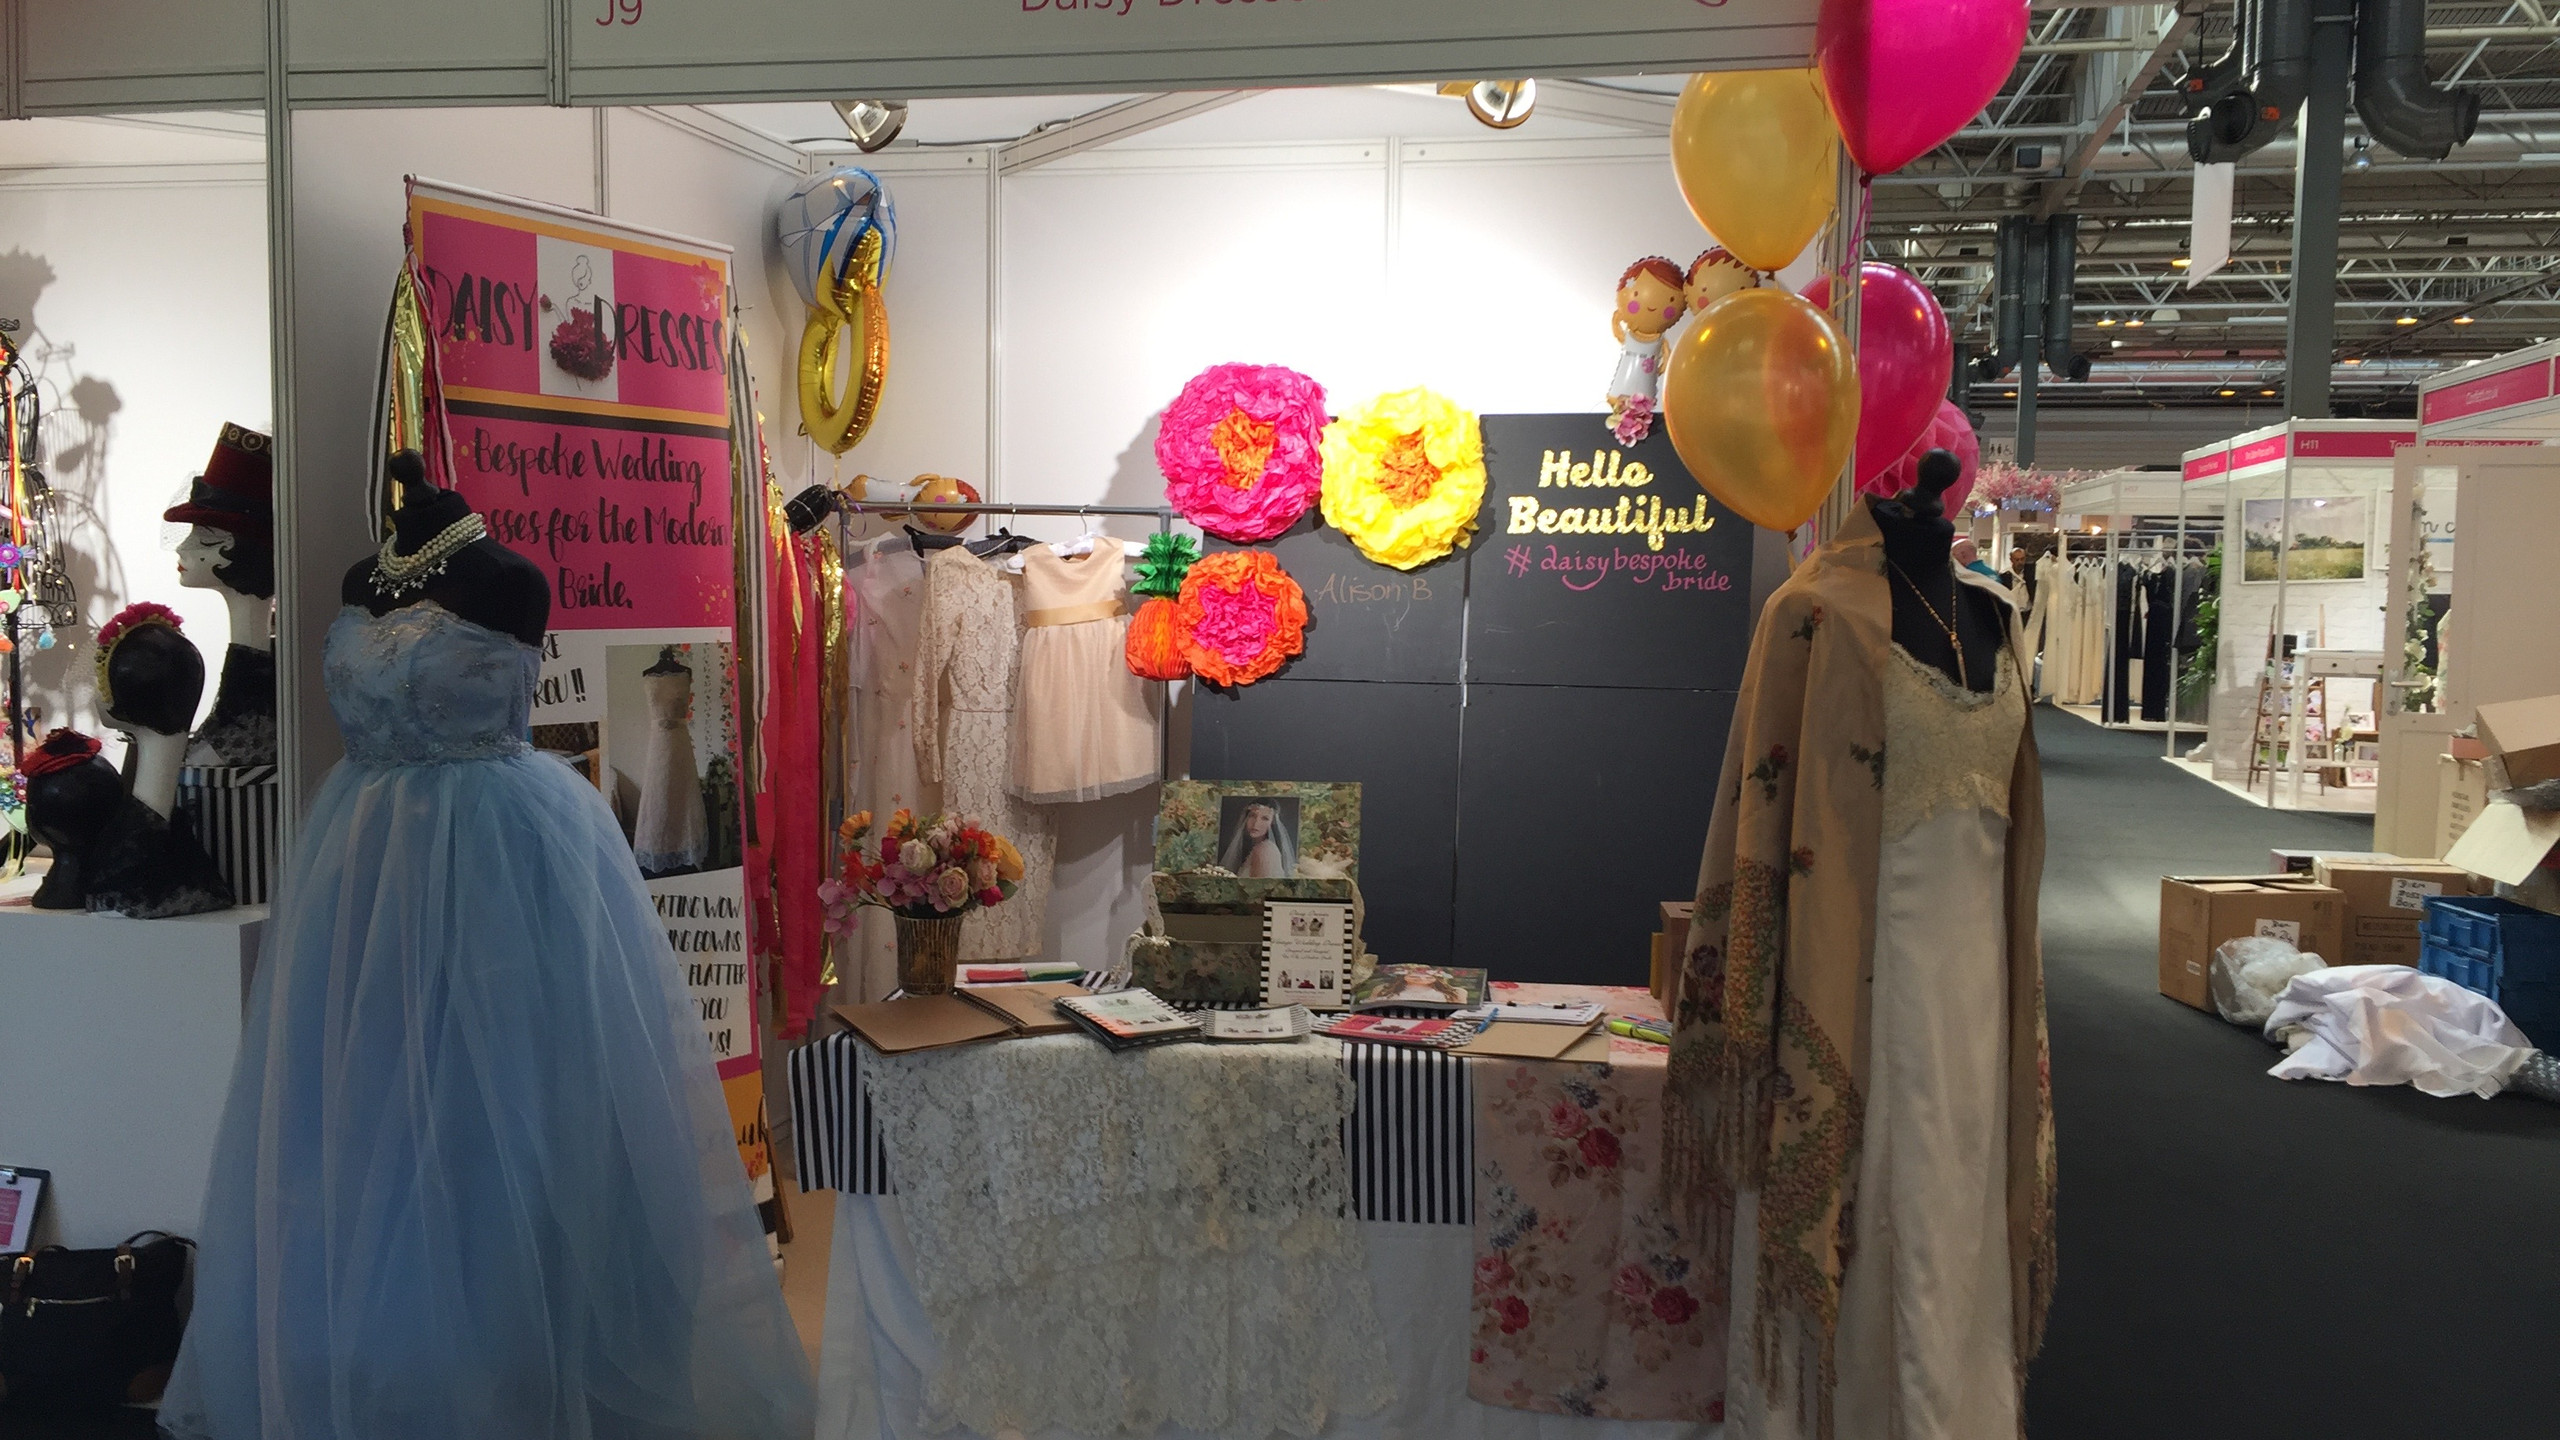 The finished stall